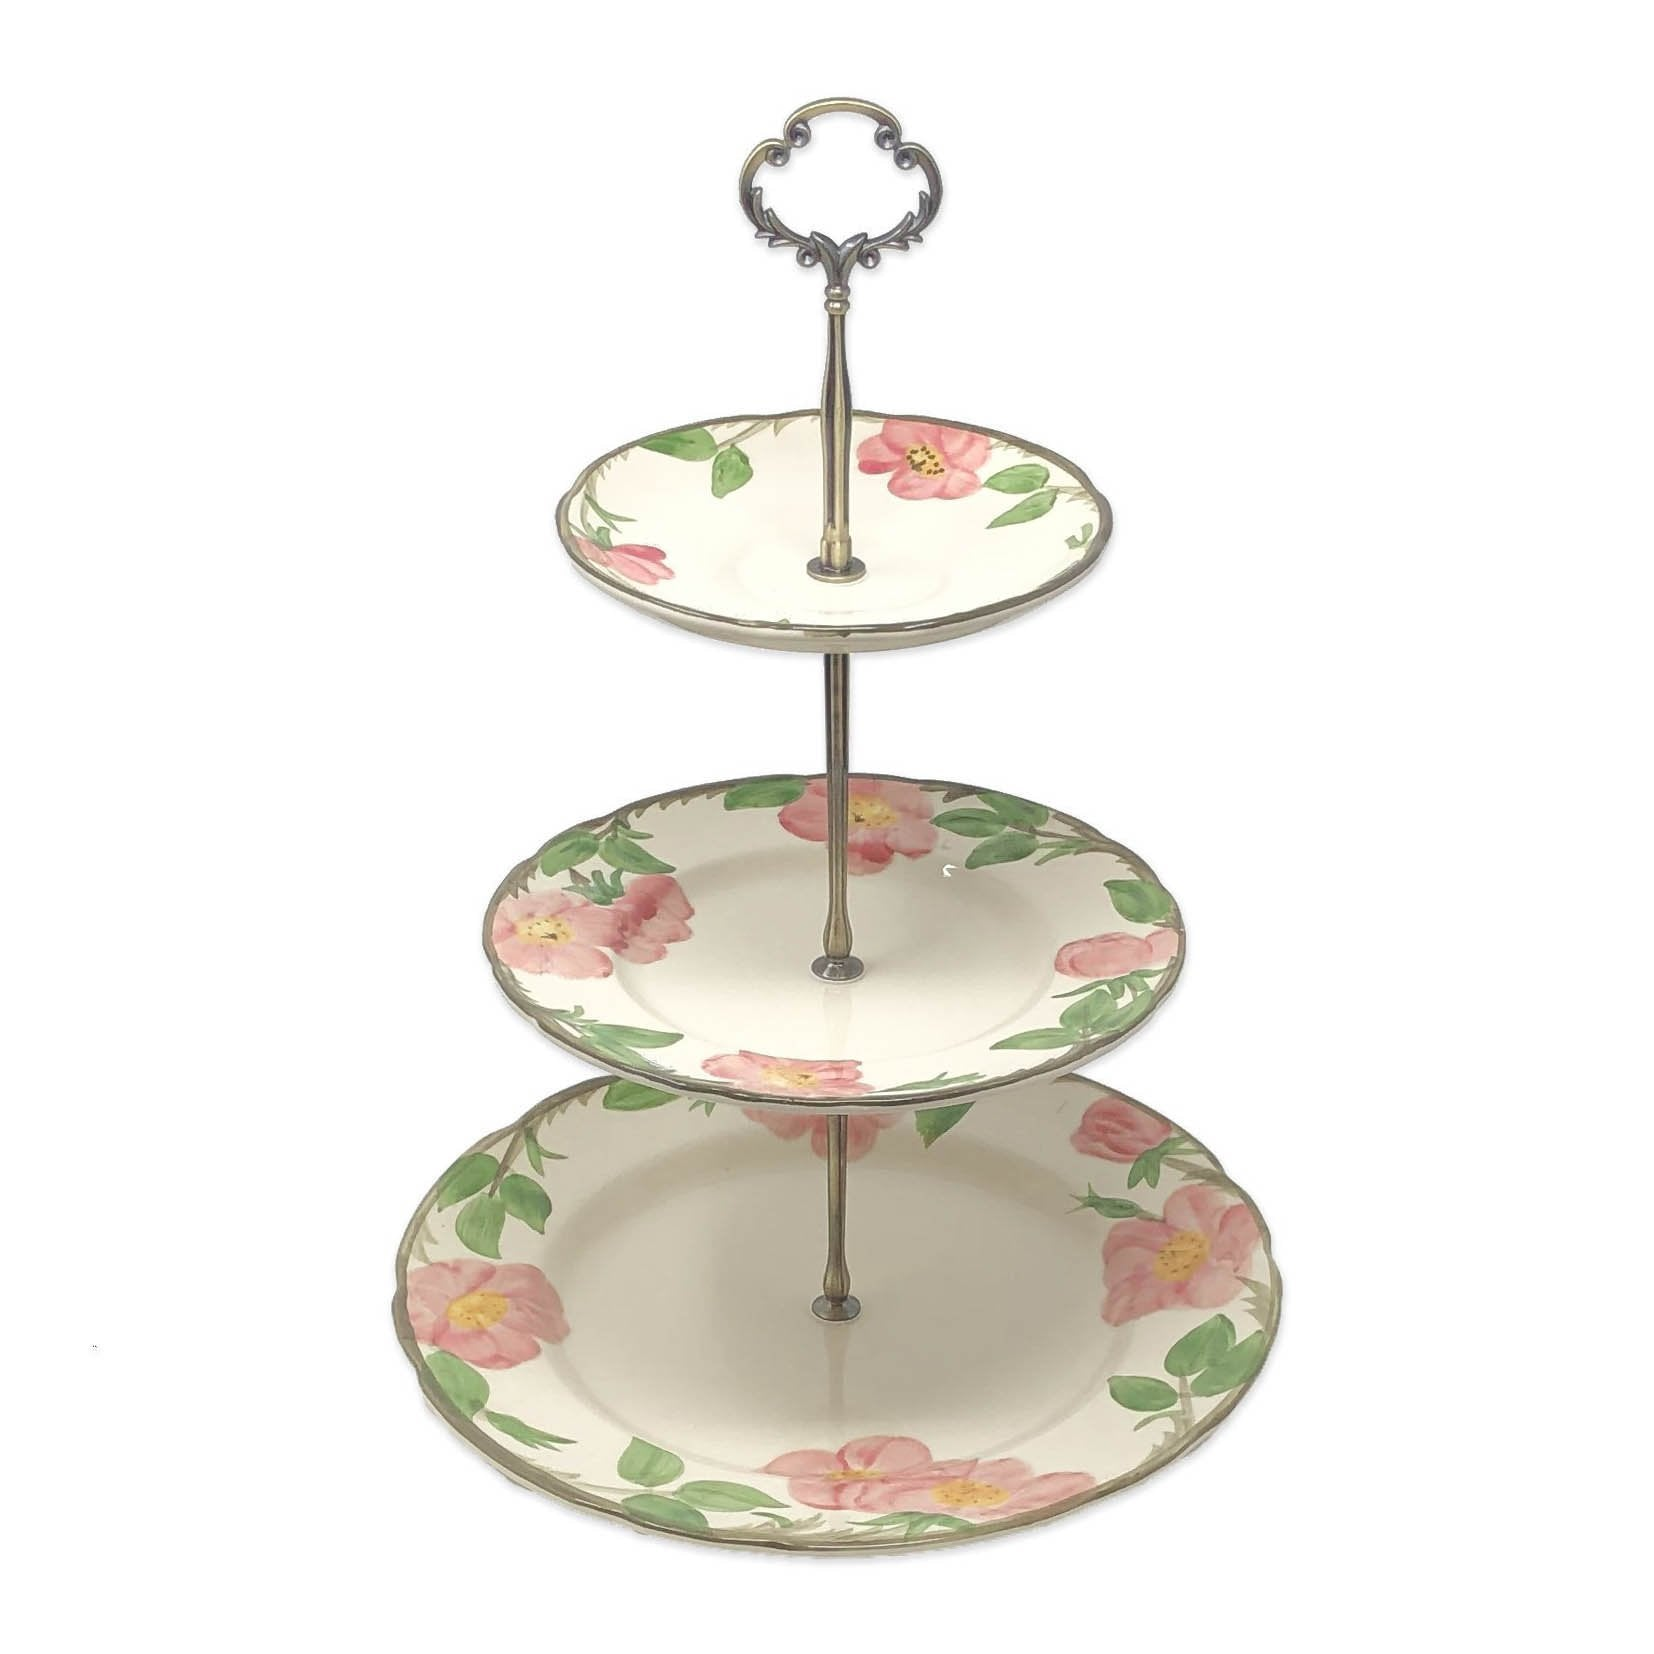 Franciscan Desert Rose | 3-Tier | Franciscan - The Brooklyn Teacup